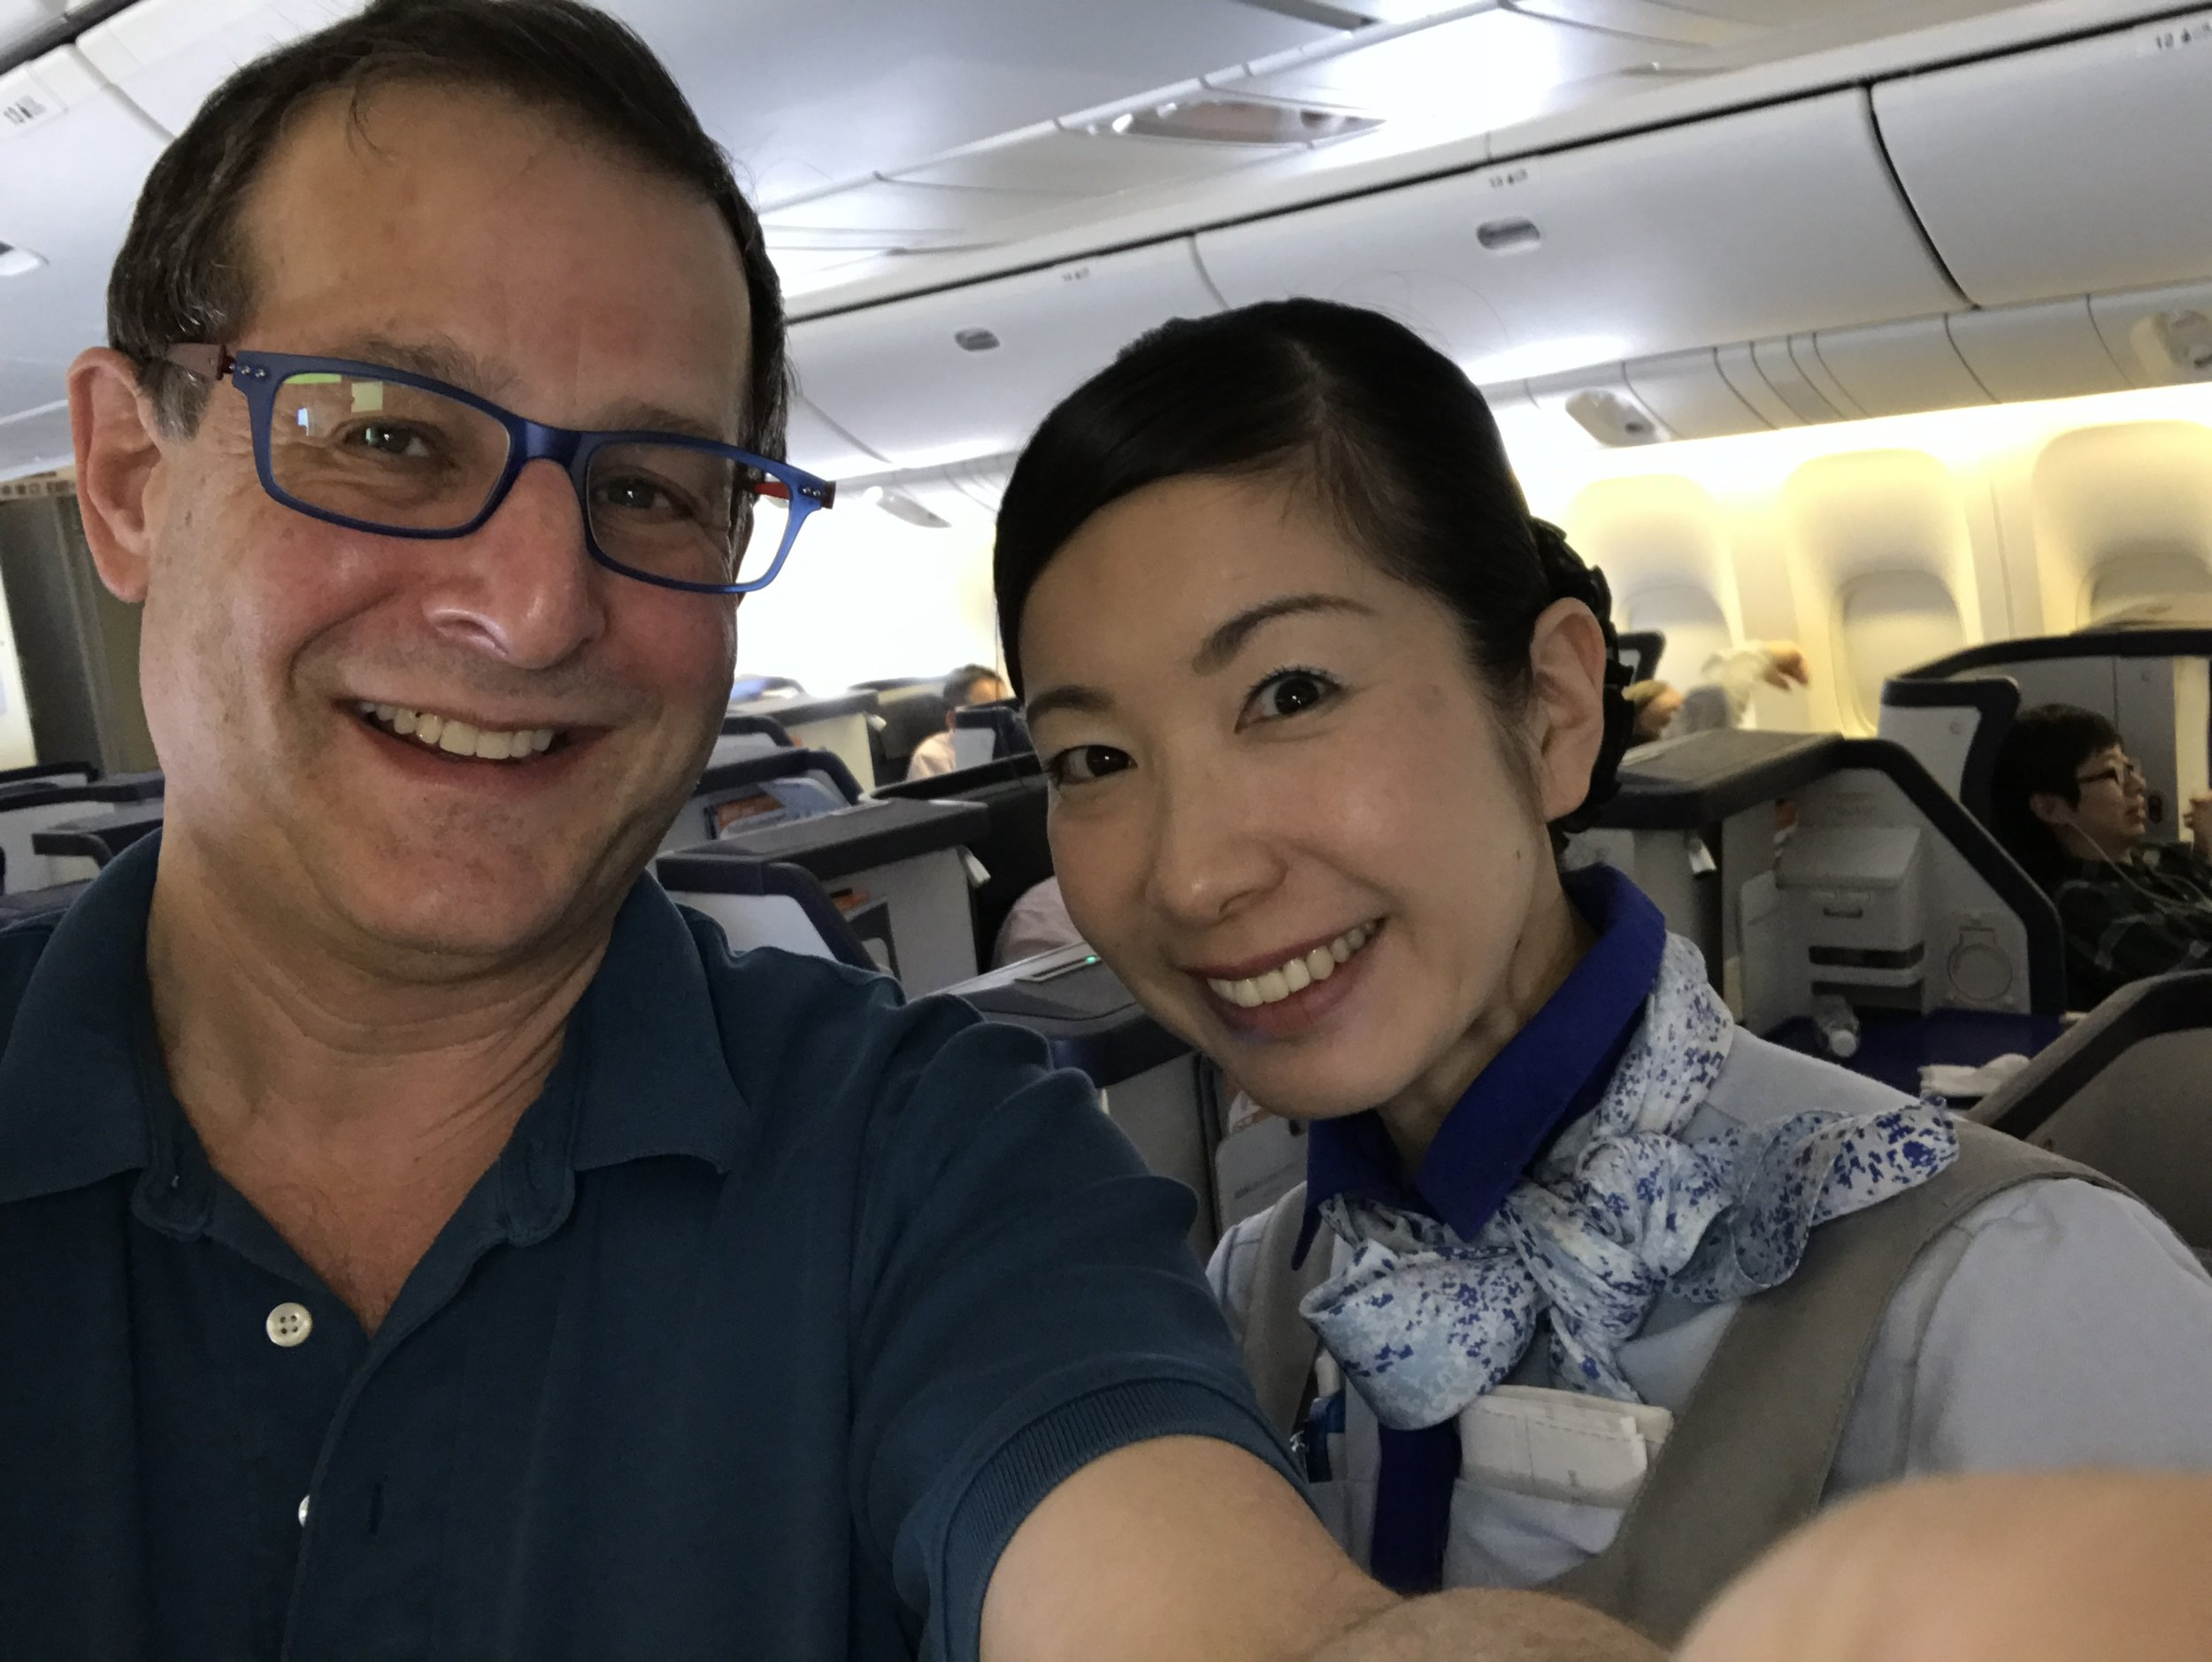 Photo: We Get Around Network Founder Dan Smigrod and ANA Flight Attendant Ms. Sugita. Image by We Get Around Chief Photographer Dan Smigrod